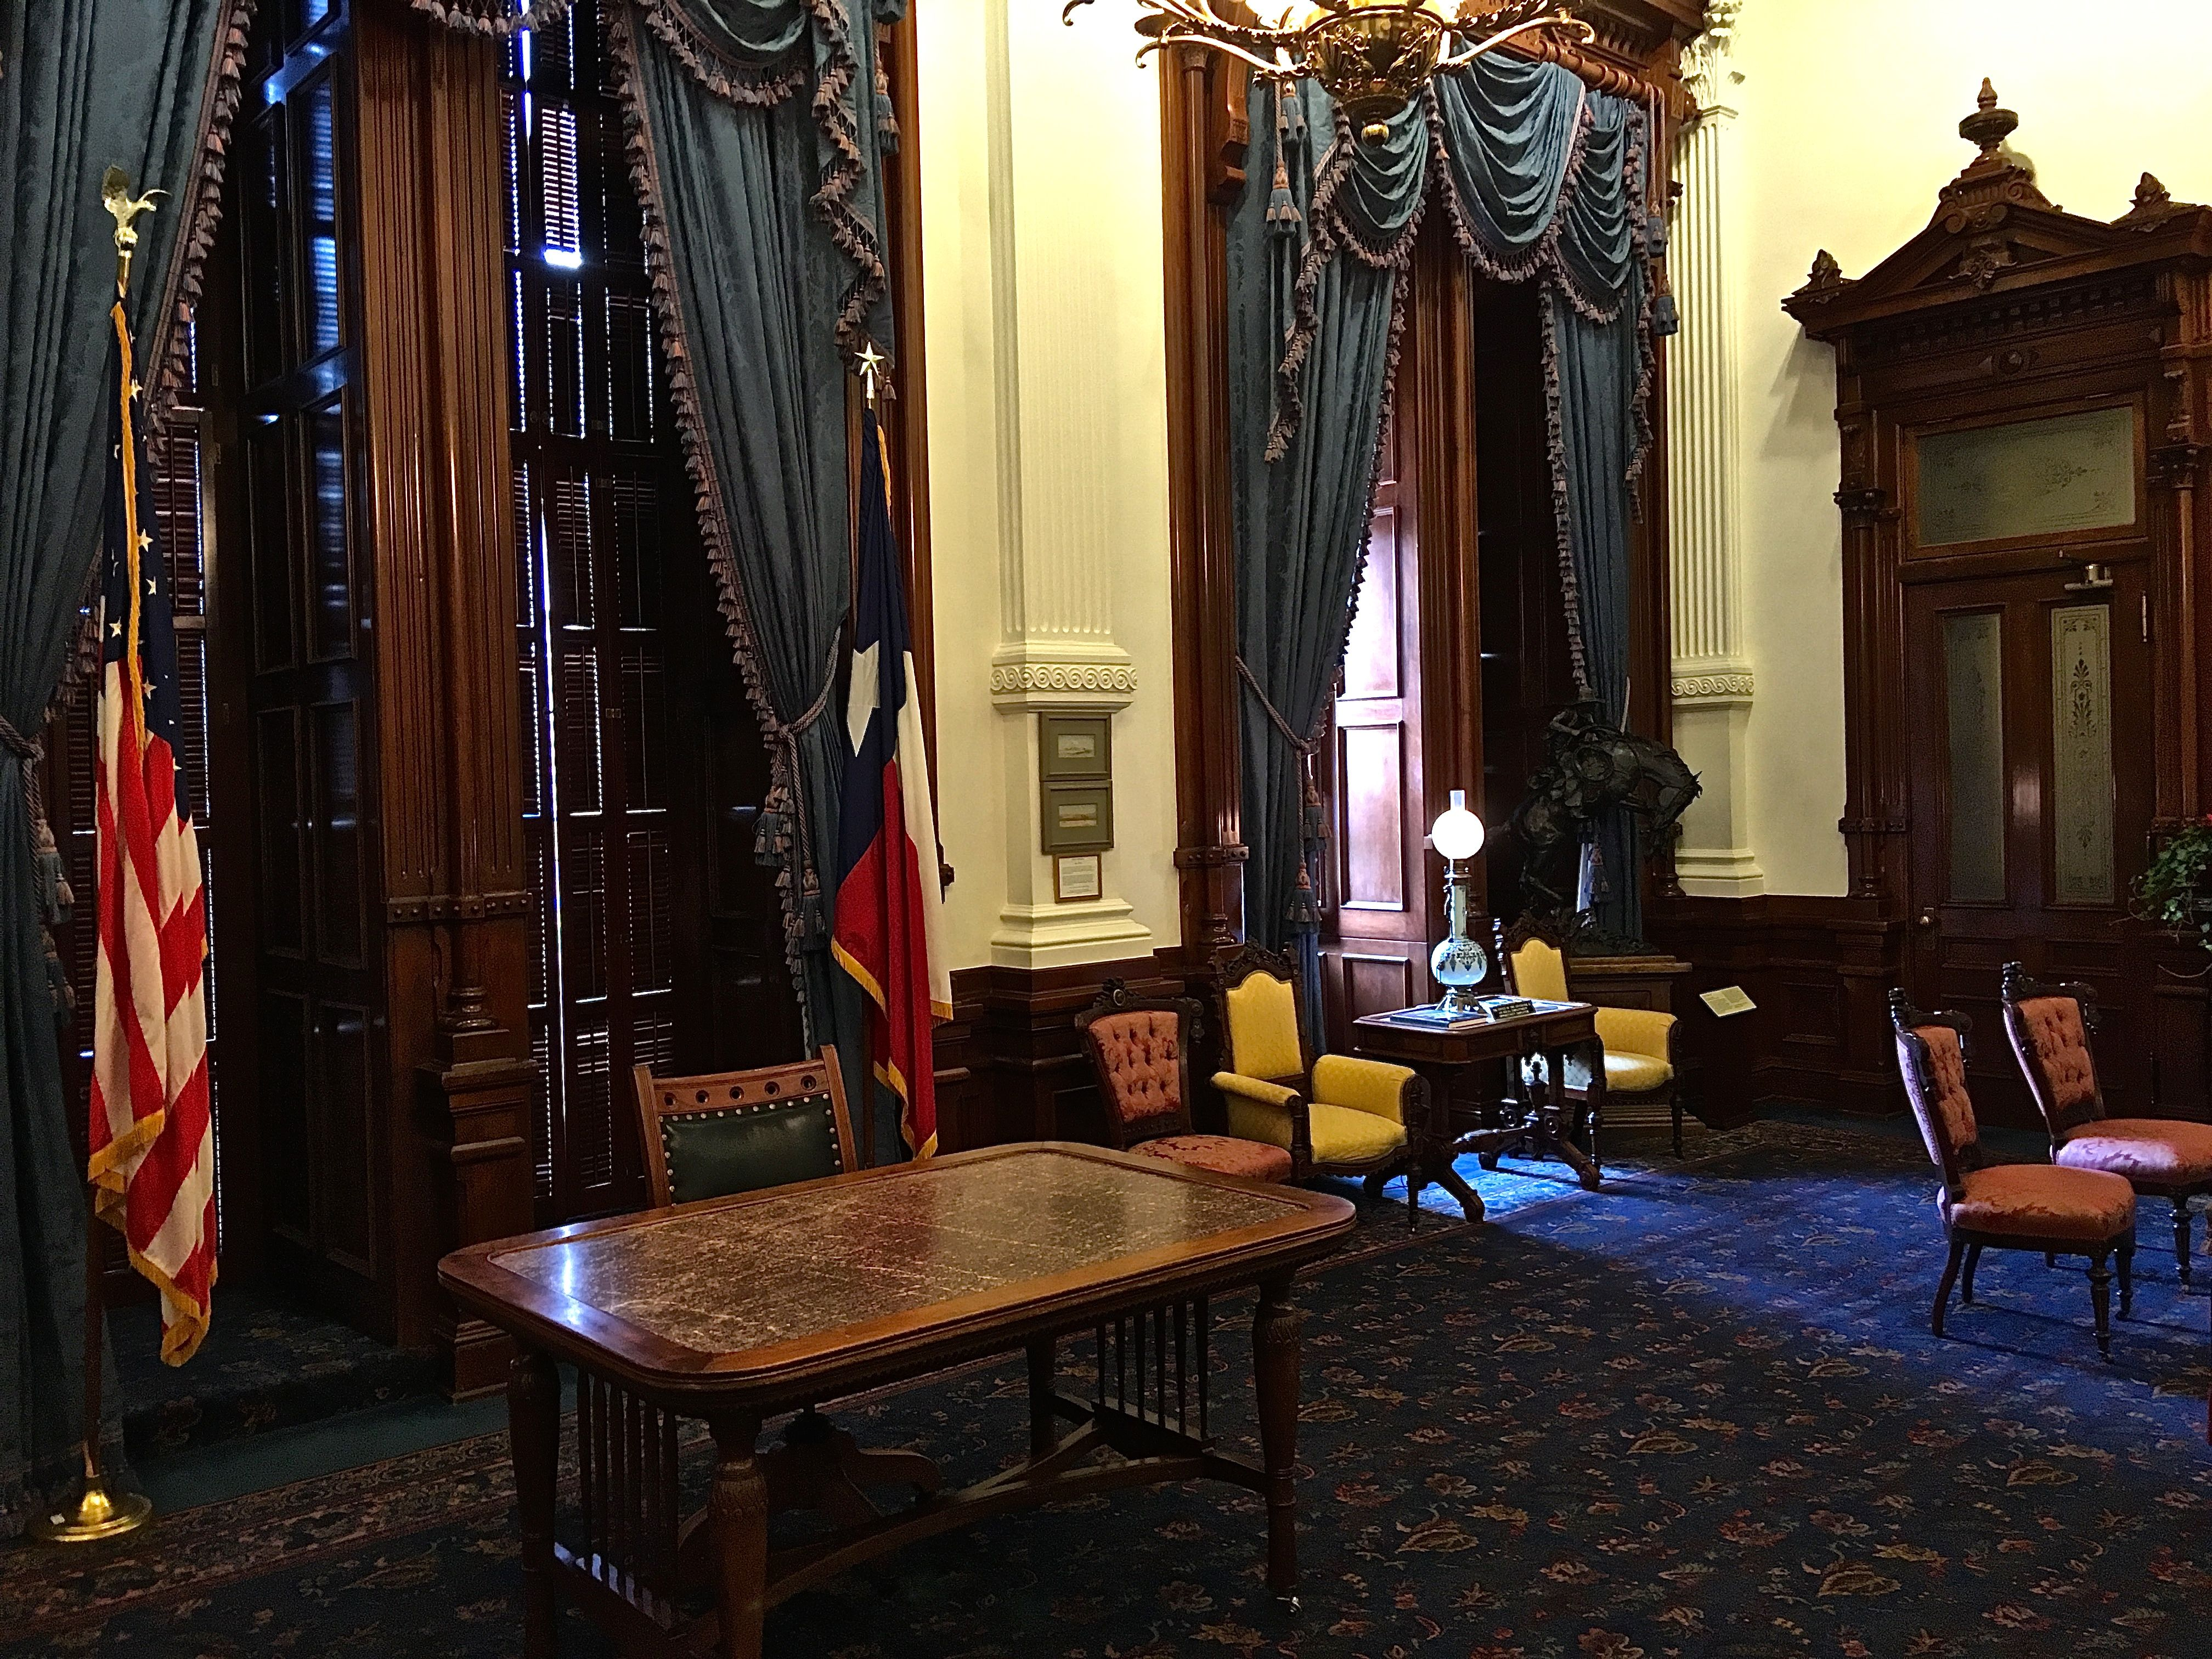 The Governor Of Texas Has An Office In The Capitol Building In